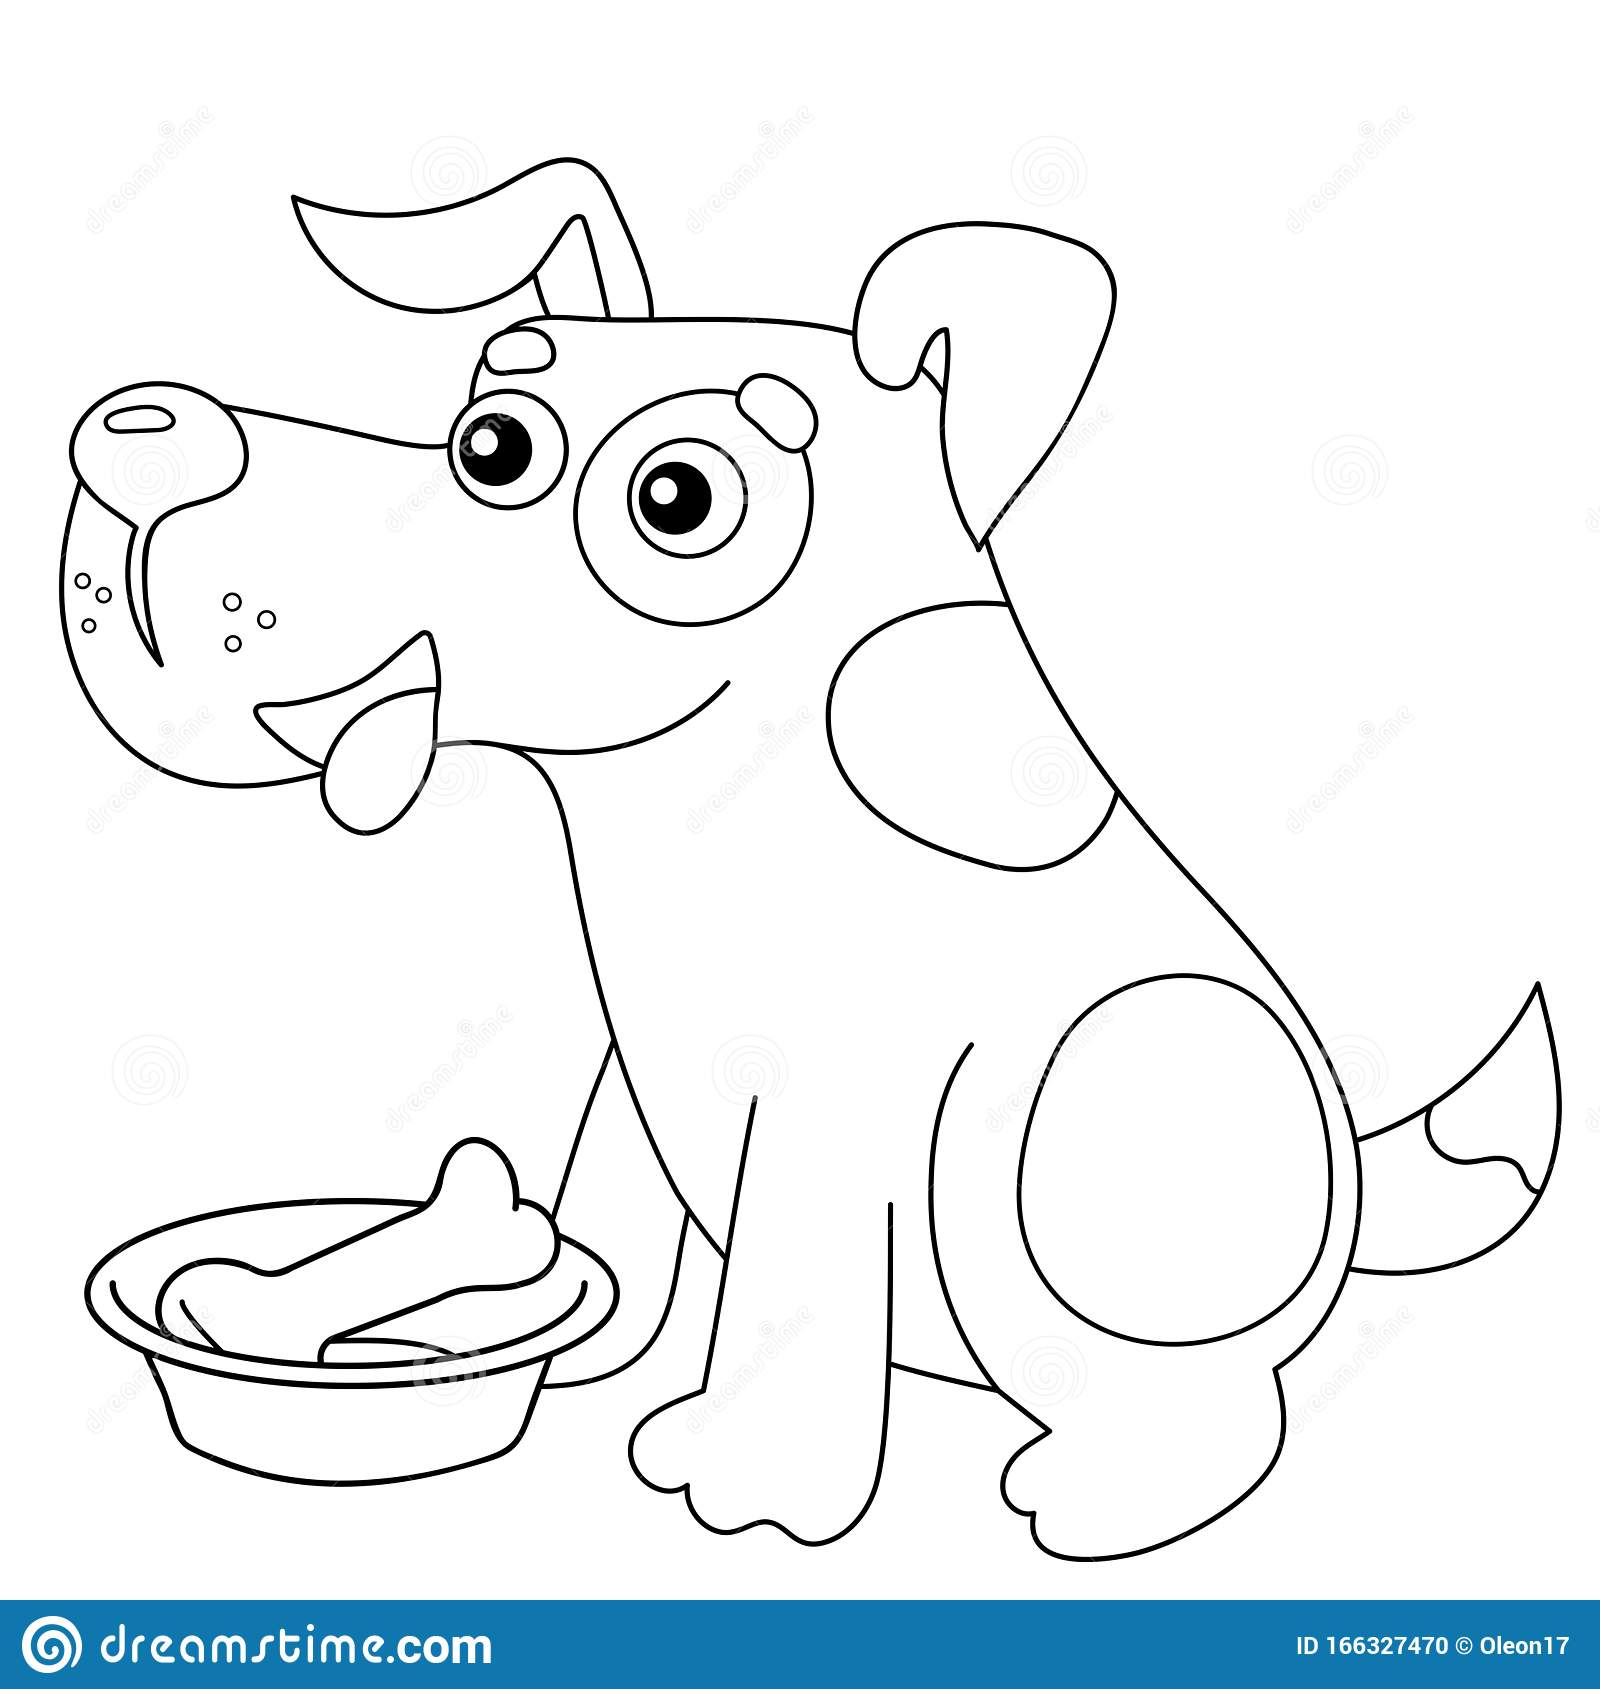 Coloring Page Outline Of Cartoon Dog With Bone Pets Coloring Book For Kids Stock Vector Illustration Of Amusing Colour 166327470